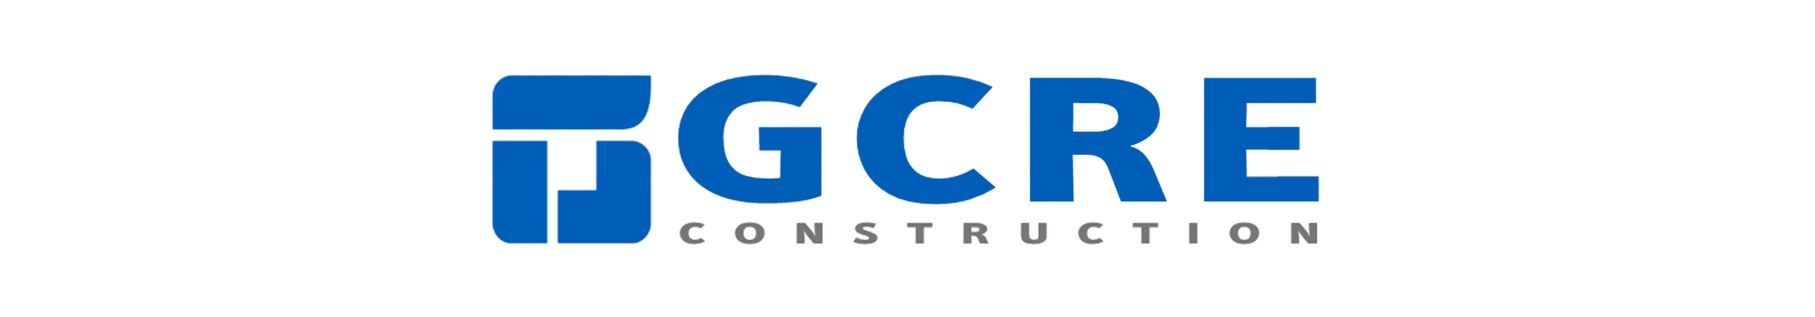 GCRE Construction Announces Hire of Greg Scarcell as VP, Operations in Houston